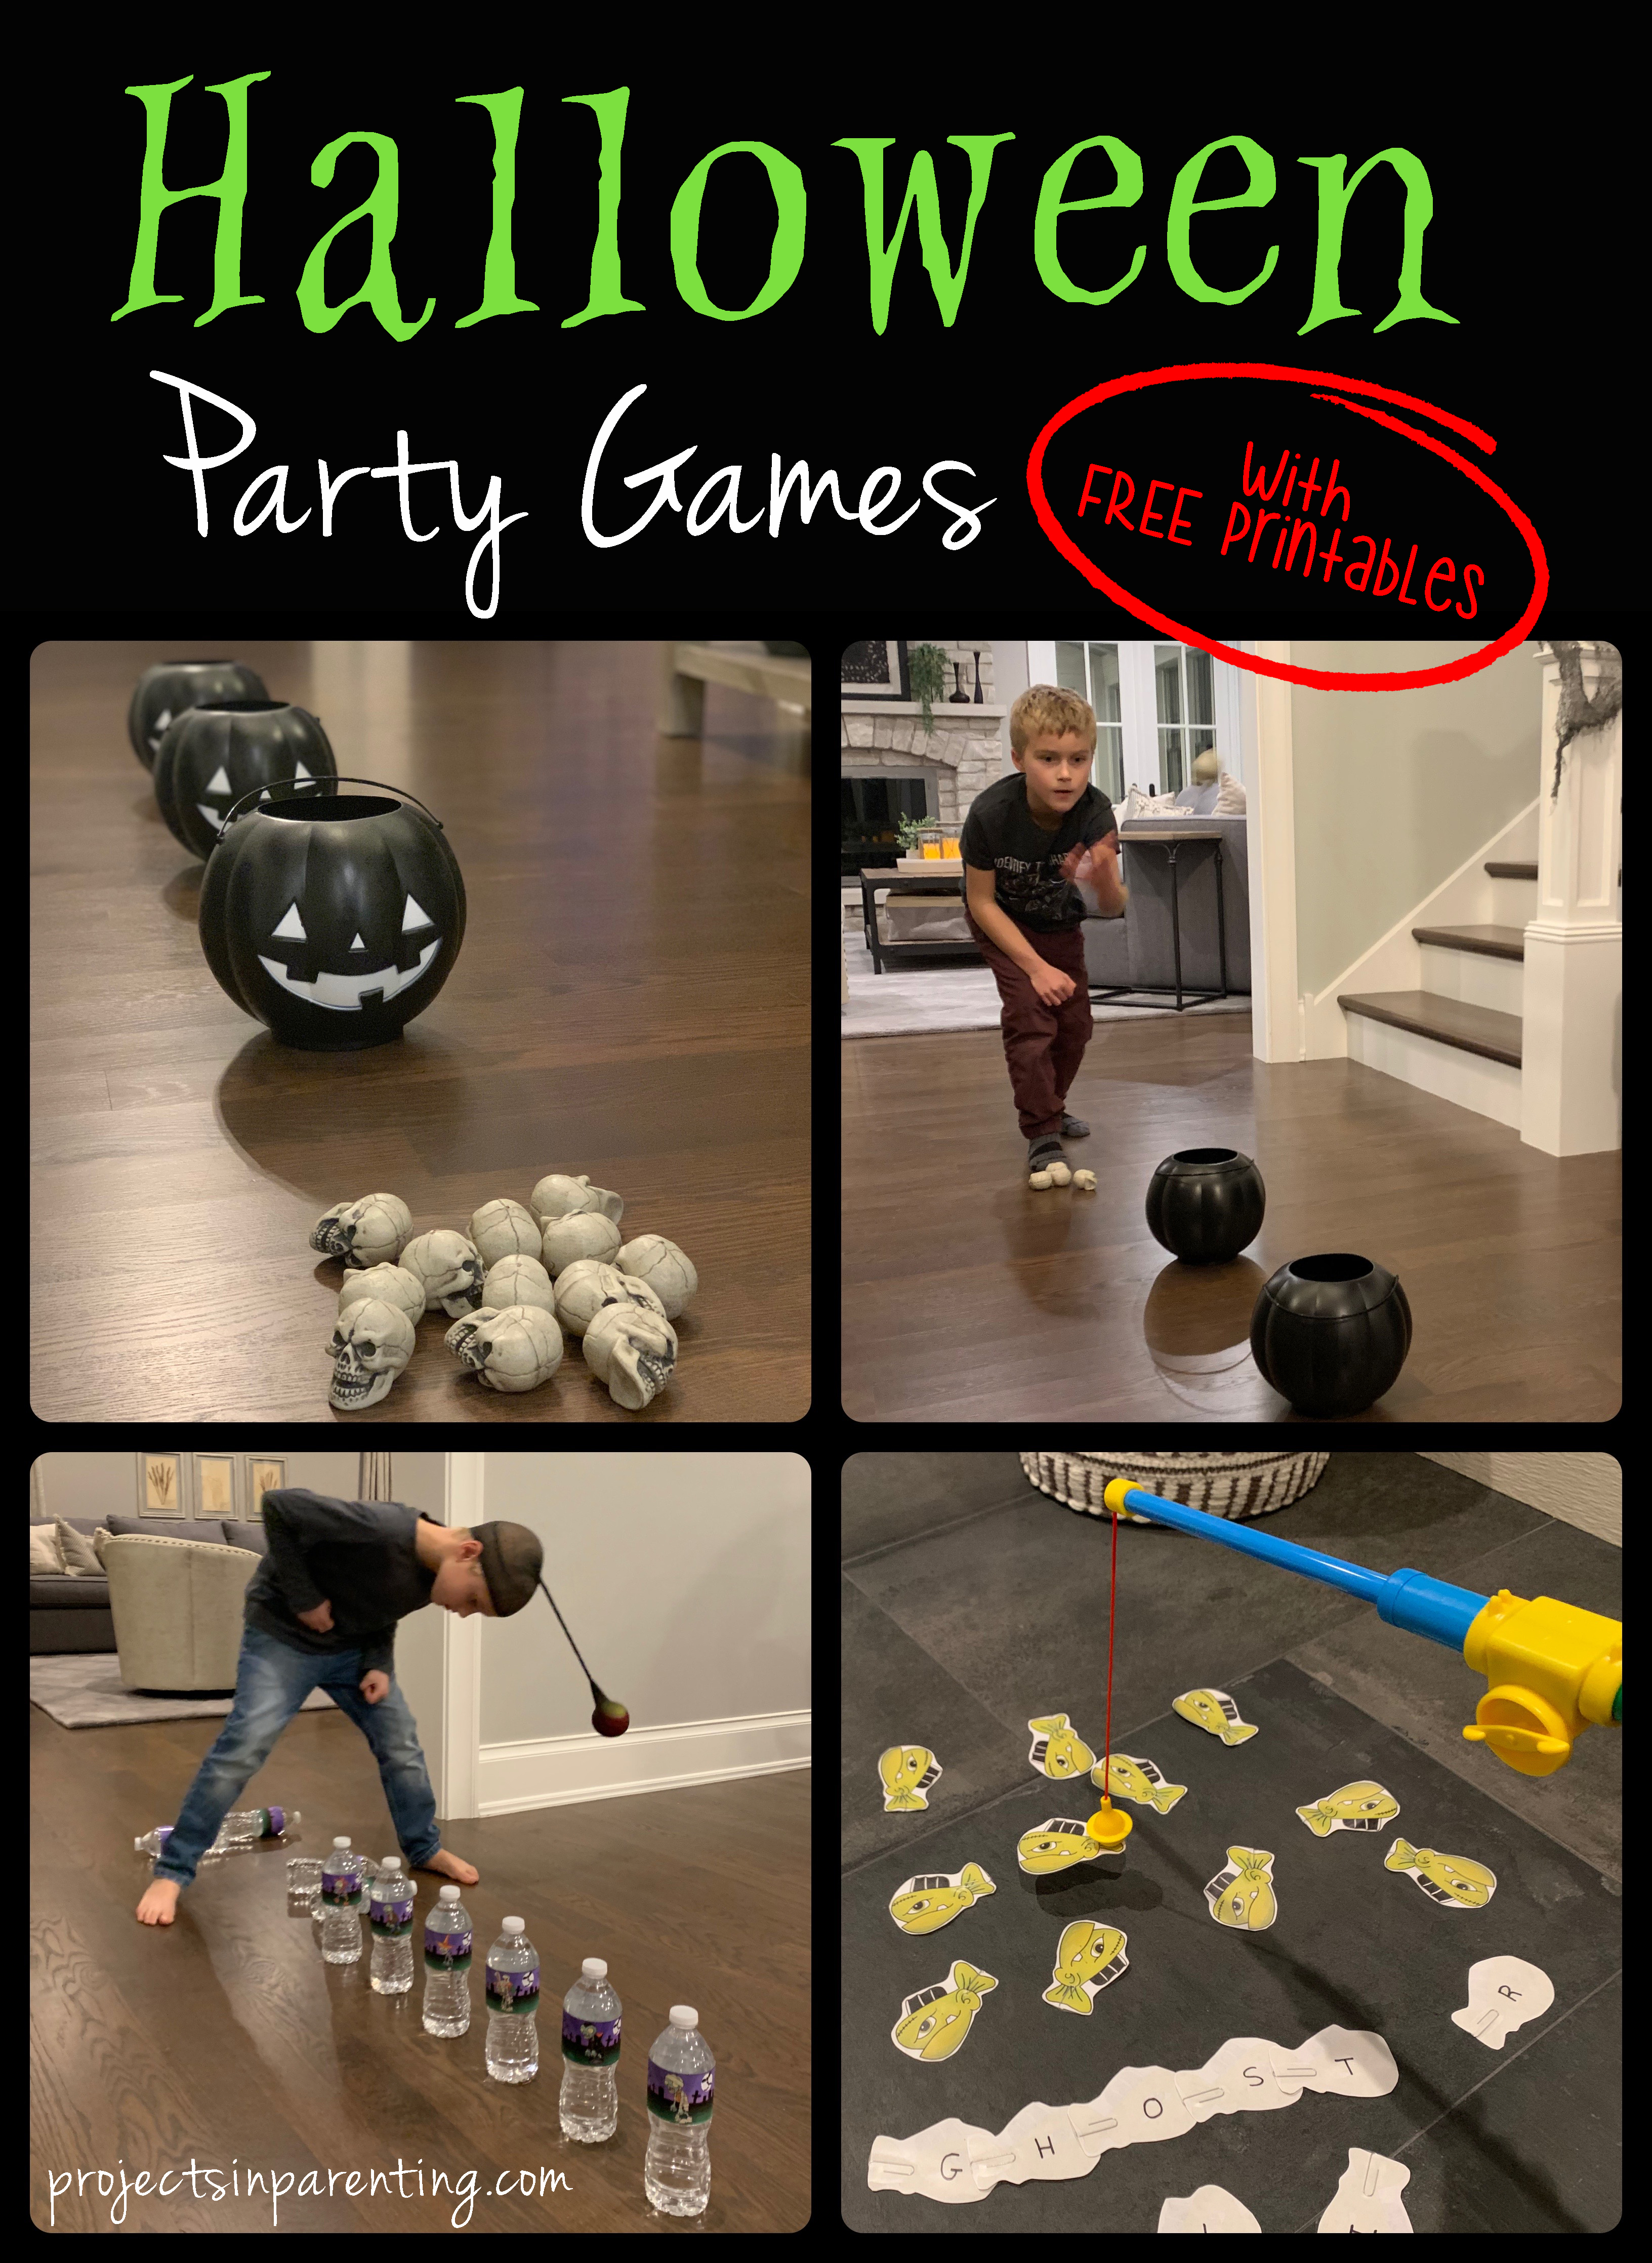 Halloween Party Games with FREE Printables - projectsinparenting.com